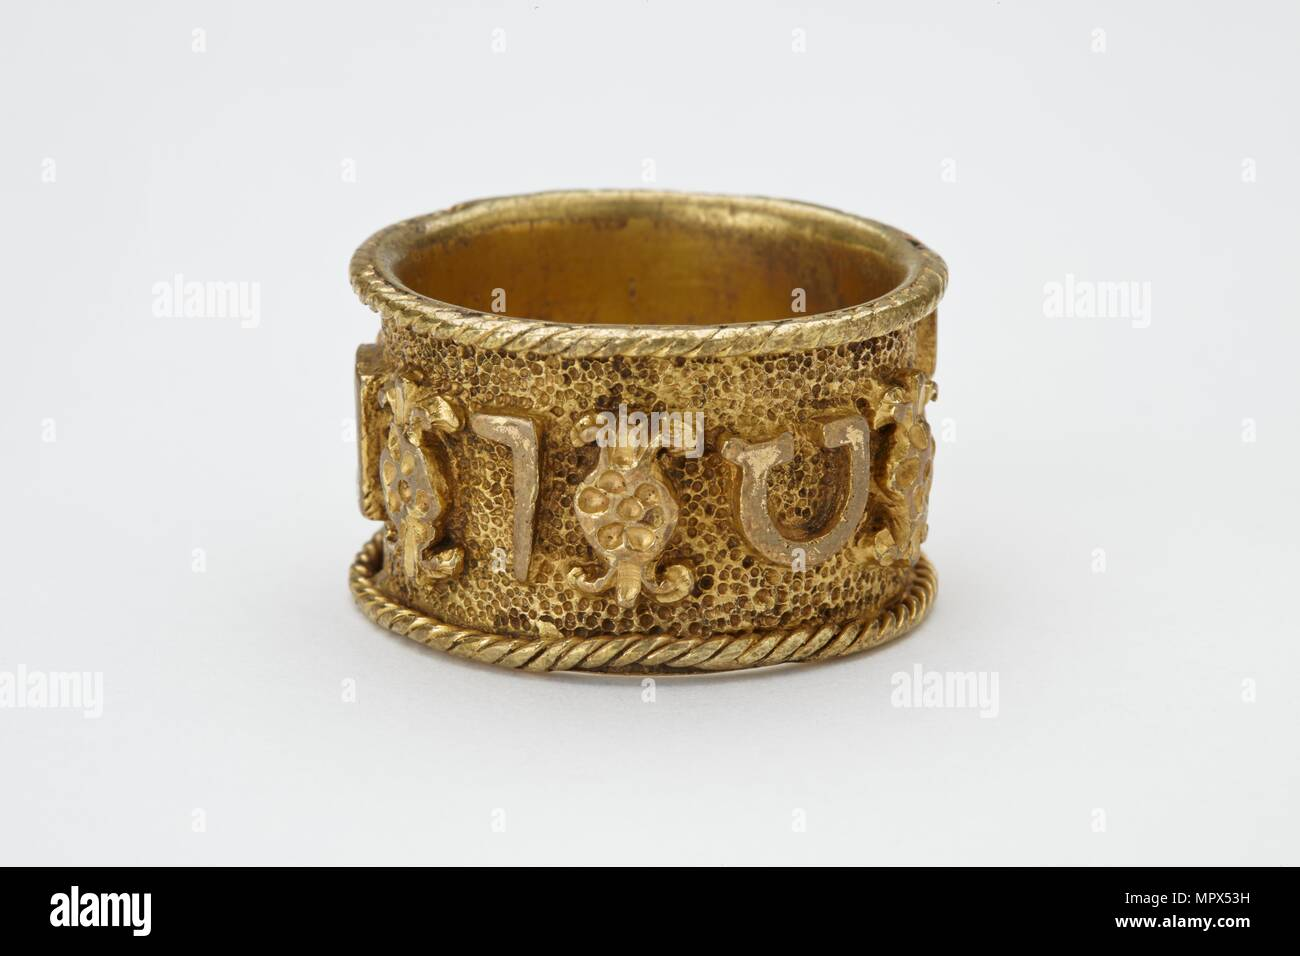 from ca marriage of the museum scenes rings walters wikipedia century wedding art with byzantine life christ wiki ring right